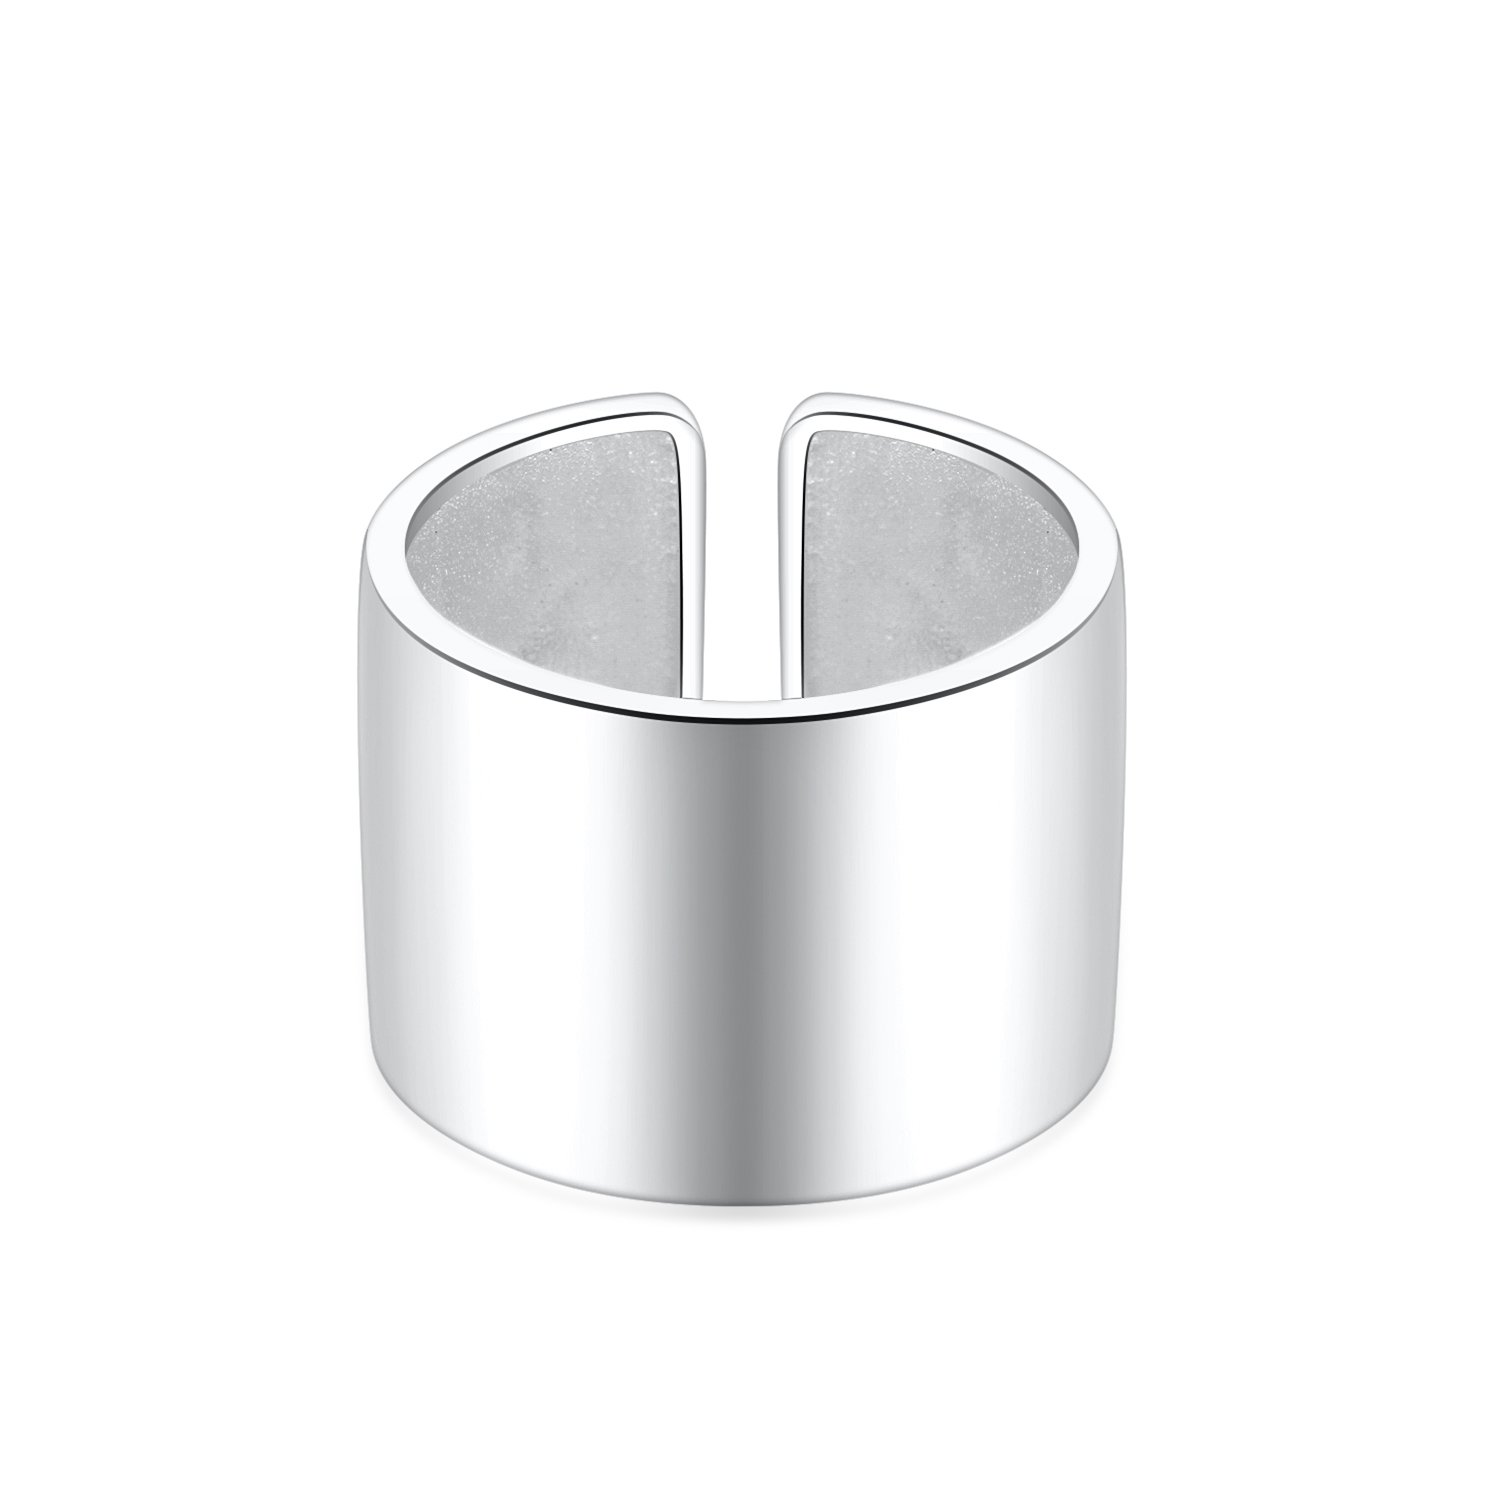 14mm Wide 926 Sterling Silver Plain Big Adjustable Open Finger Ring Cuff Thumb Ring Band by Silbertale (Image #2)